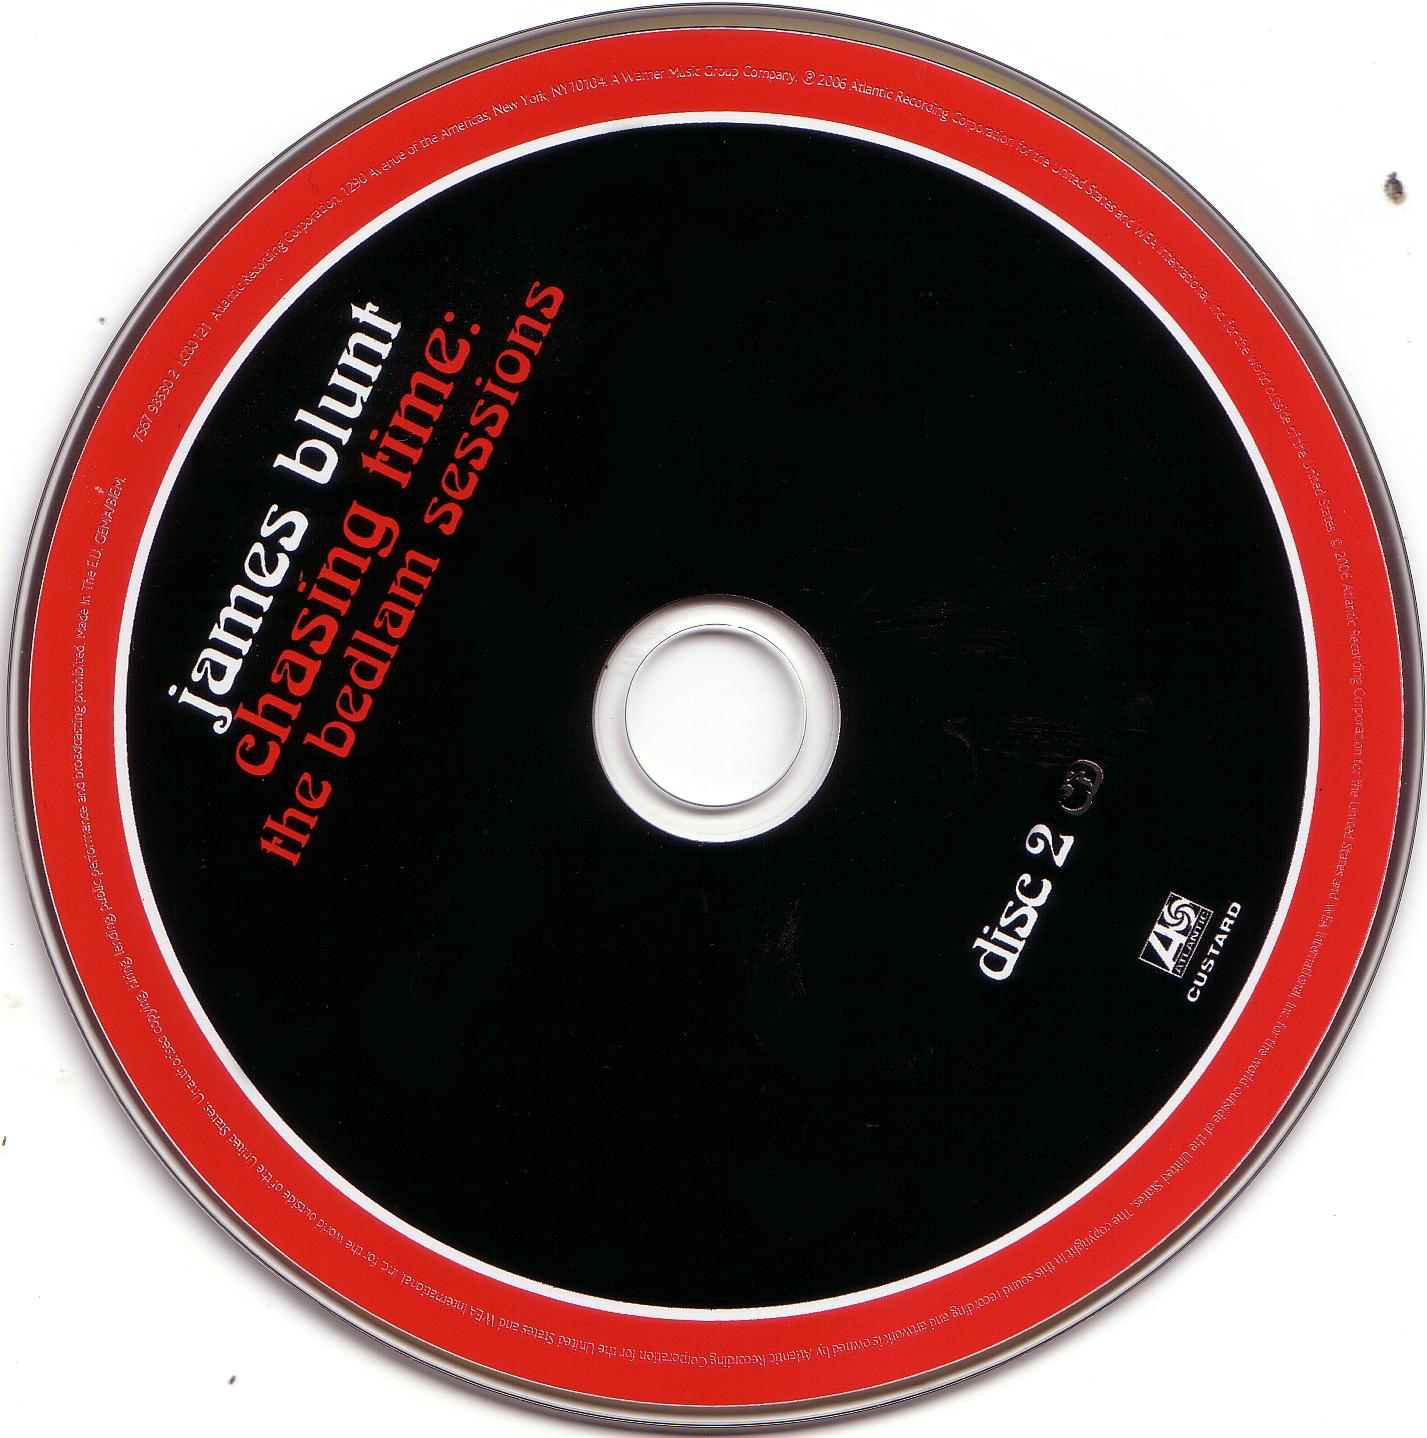 TIME CHASING DVD THE BEDLAM BLUNT SESSIONS BAIXAR JAMES